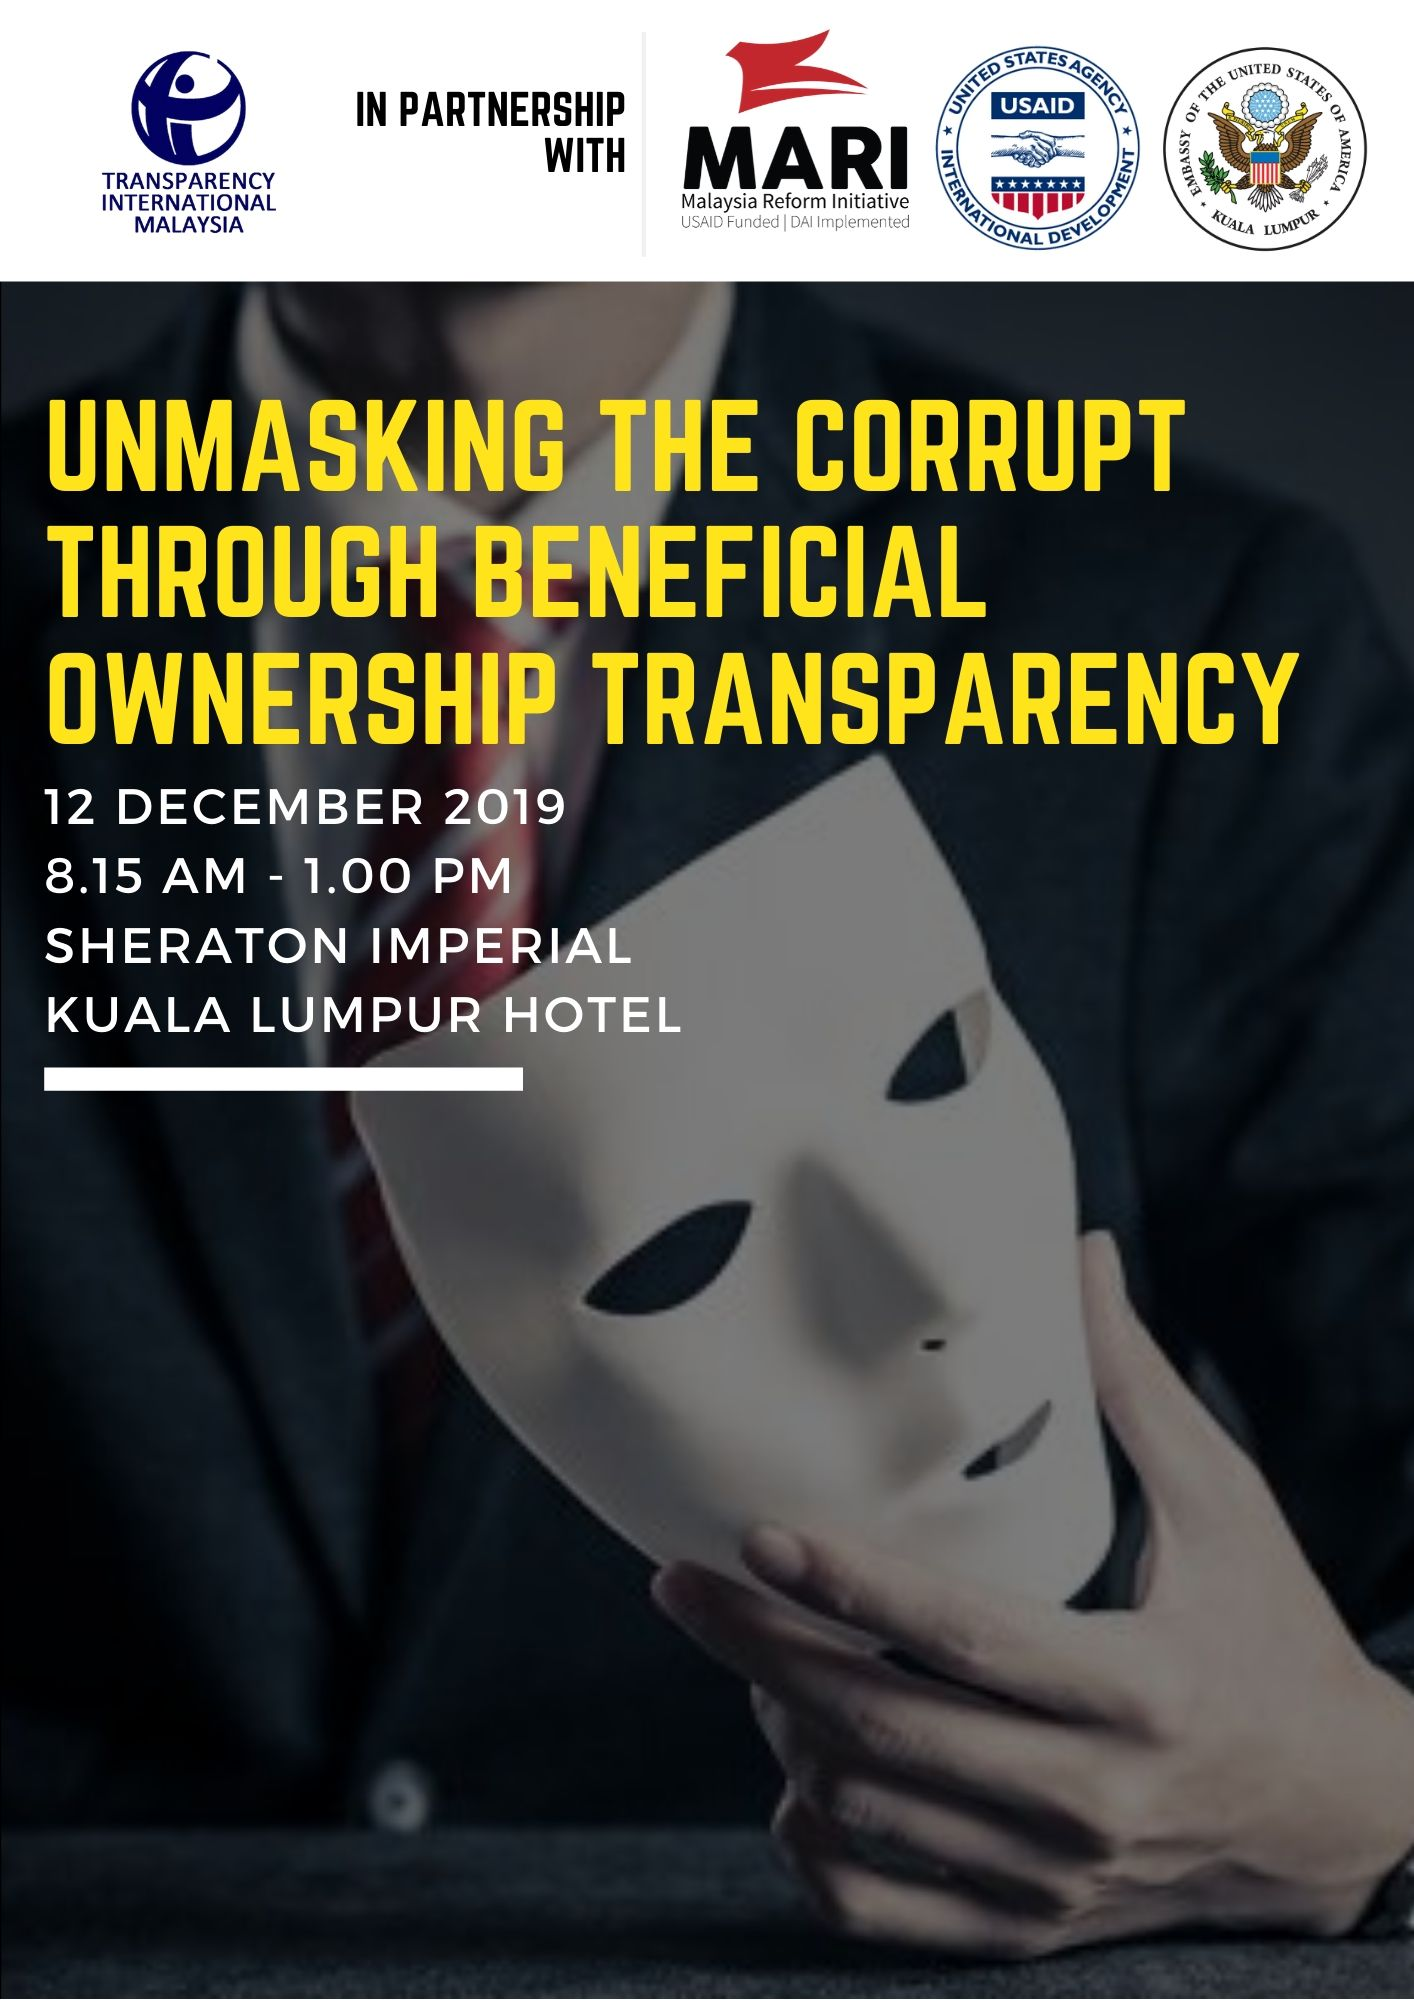 Unmasking the Corrupt through Beneficial Ownership Transparency